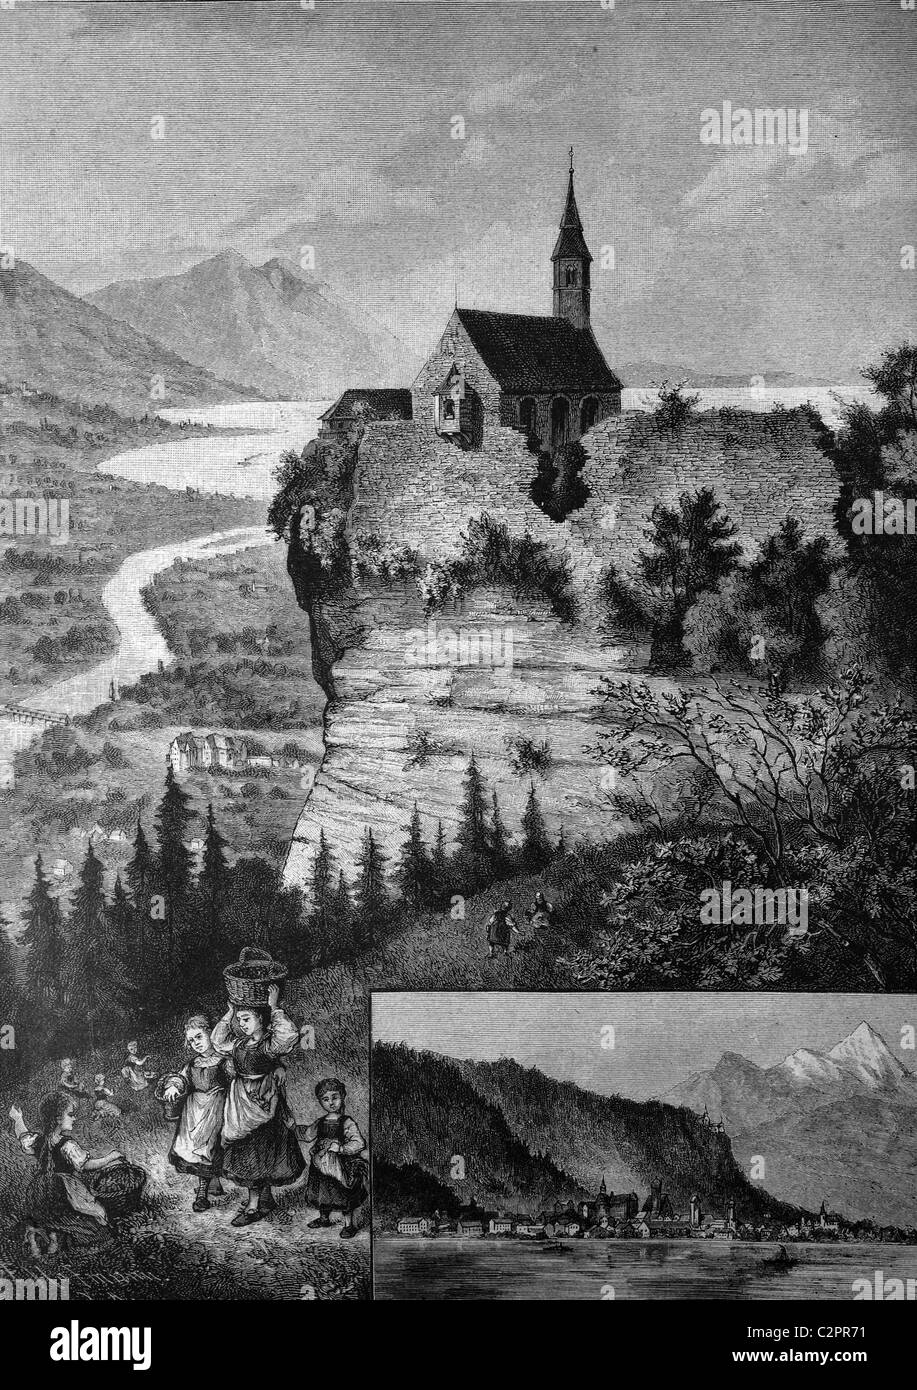 Pilgrimage chapel on Gebhardsberg mountain near Bregenz, historical illustration, about 1886, Vorarlberg, Austria, - Stock Image